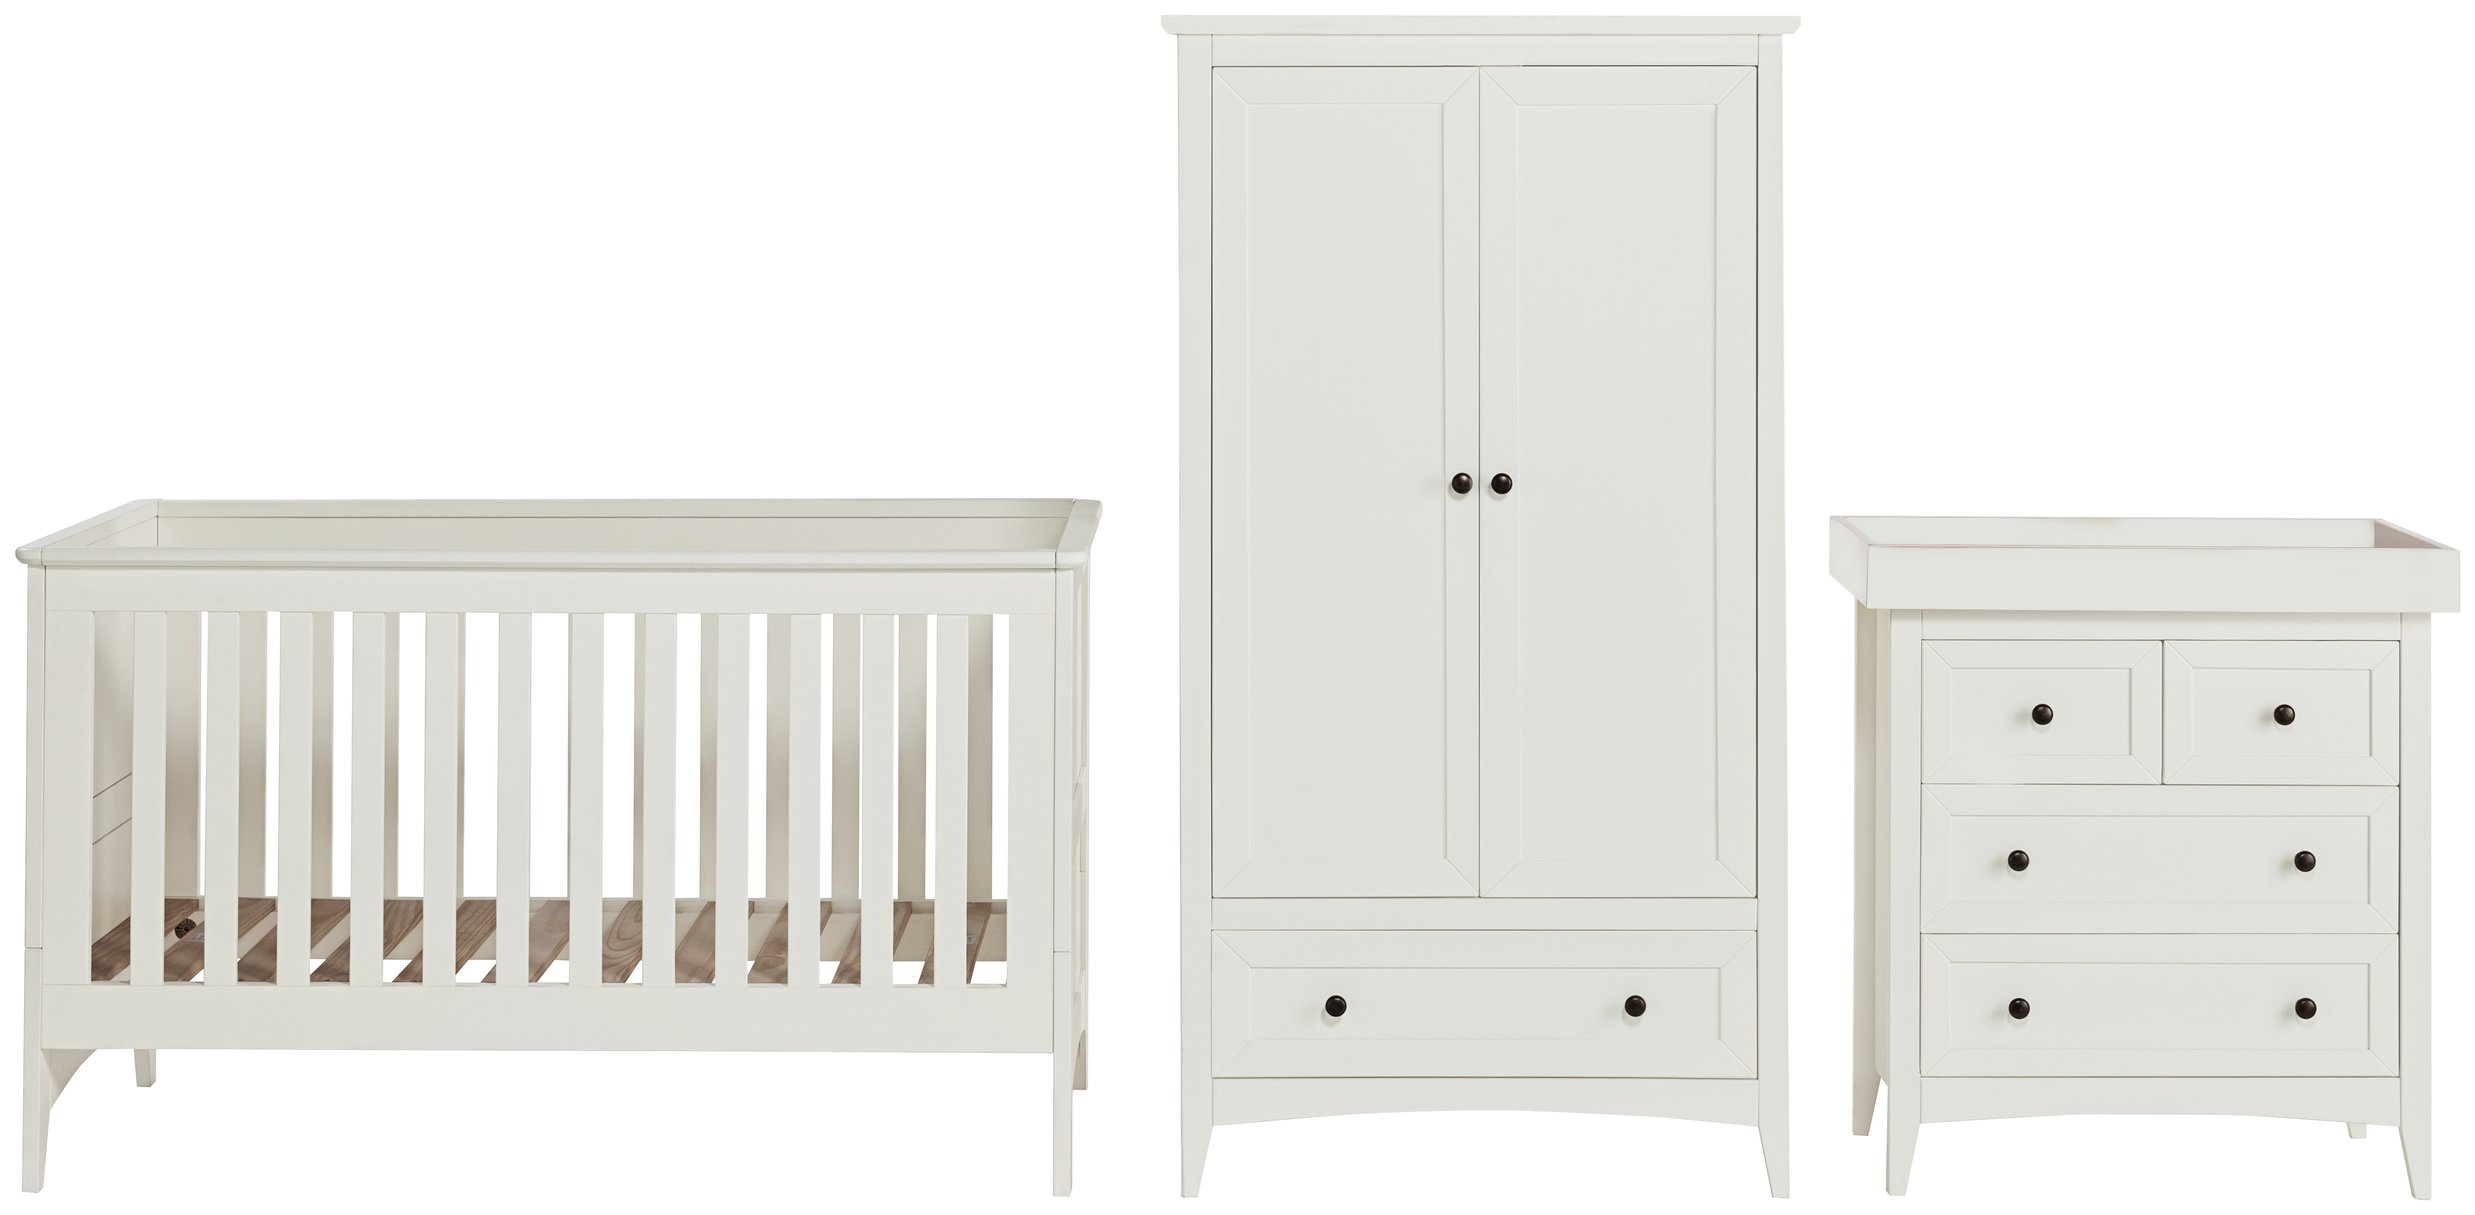 Cuggl Cambourne 3 Piece Set - White